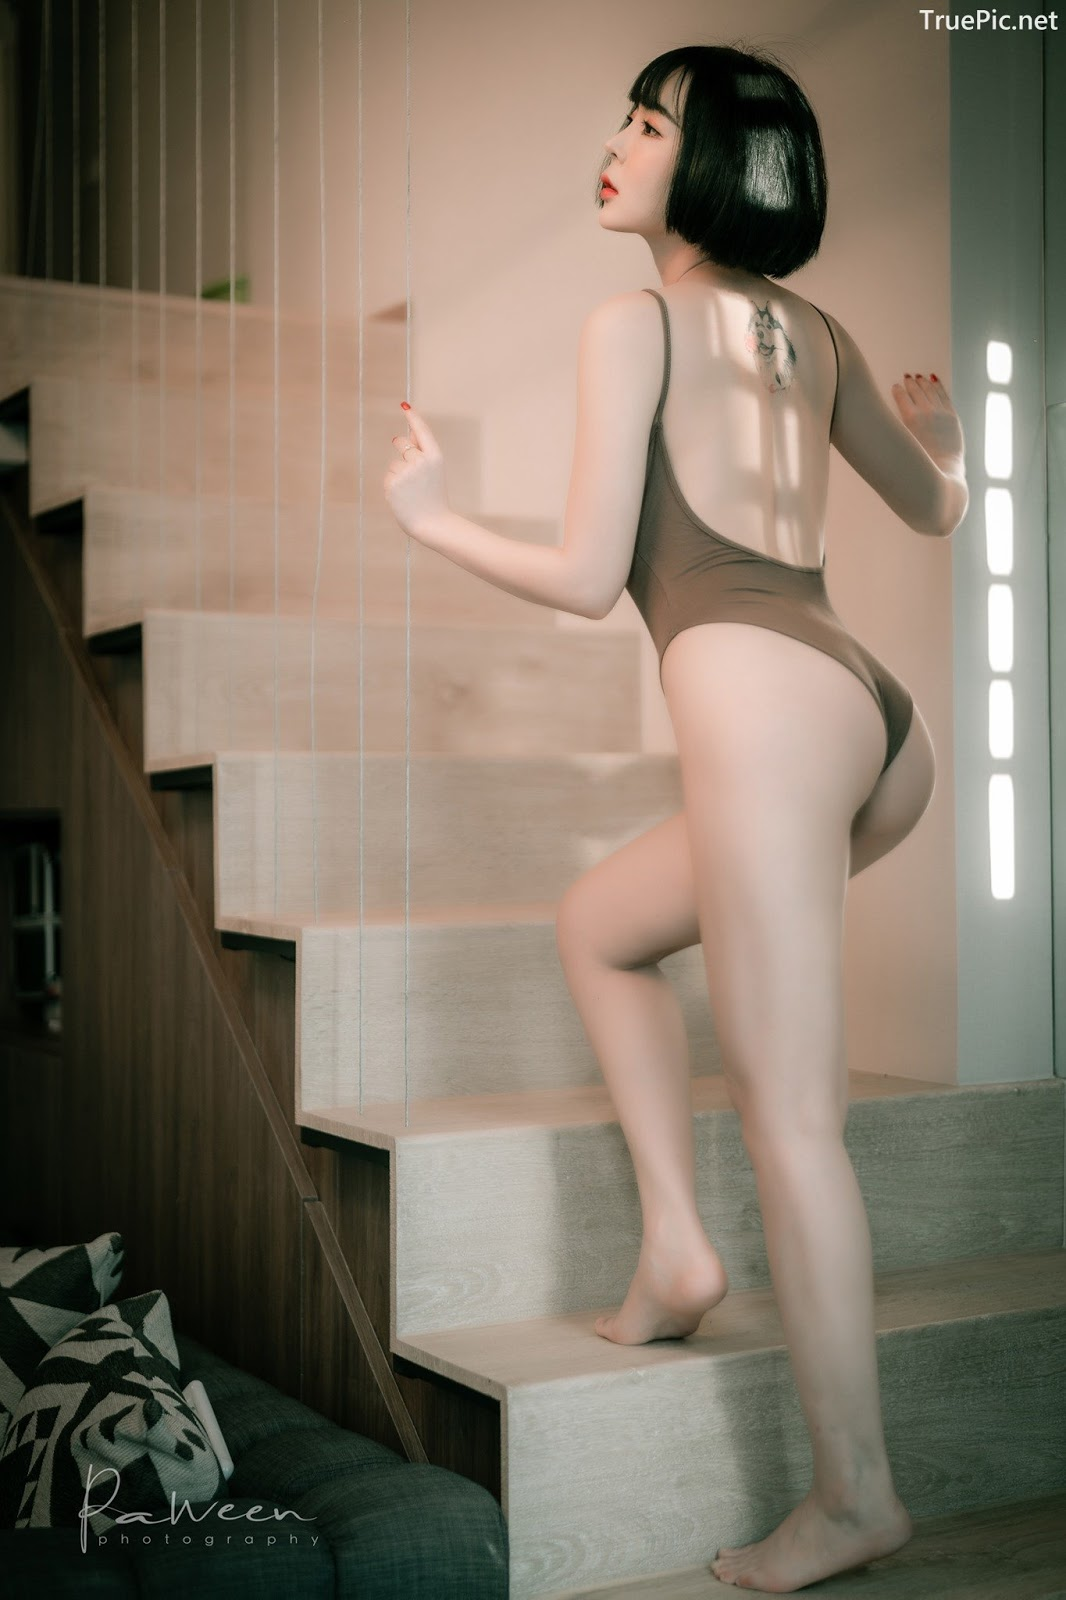 Image Thailand Model - Preeyapon Yangsanpoo - One Piece Swimsuit In House - TruePic.net - Picture-2